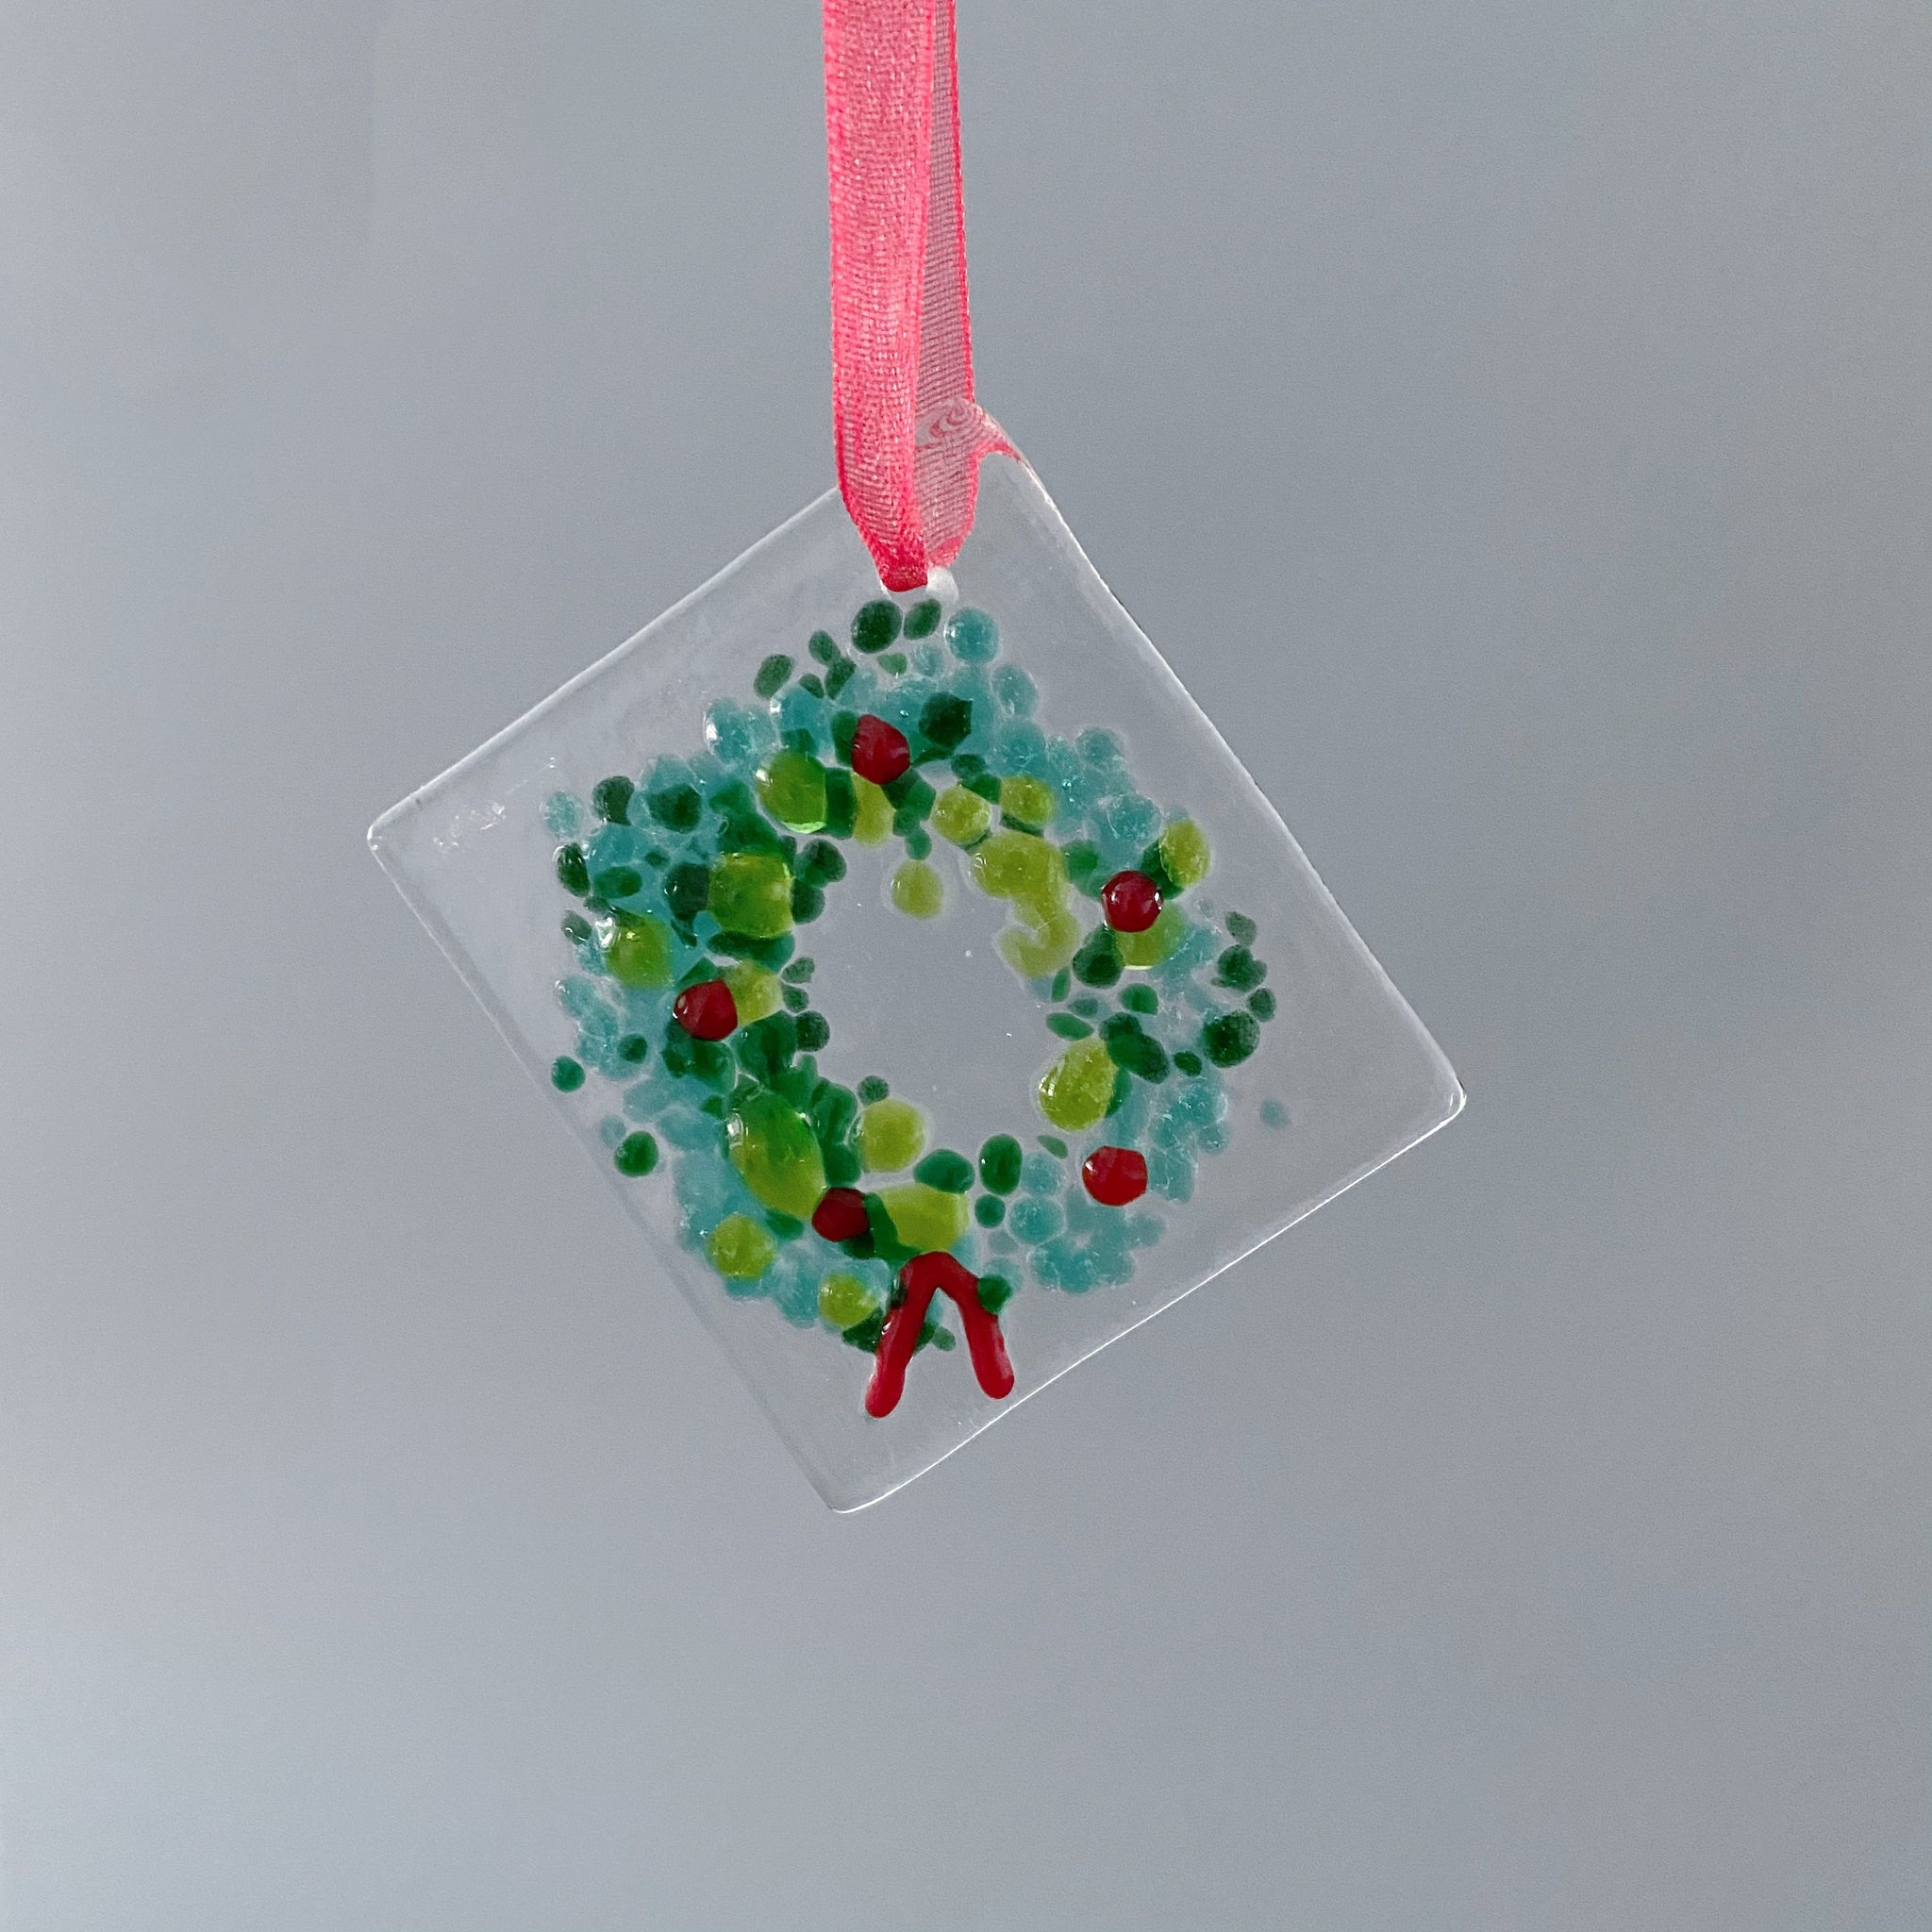 Handmade Glass Wreath Ornament